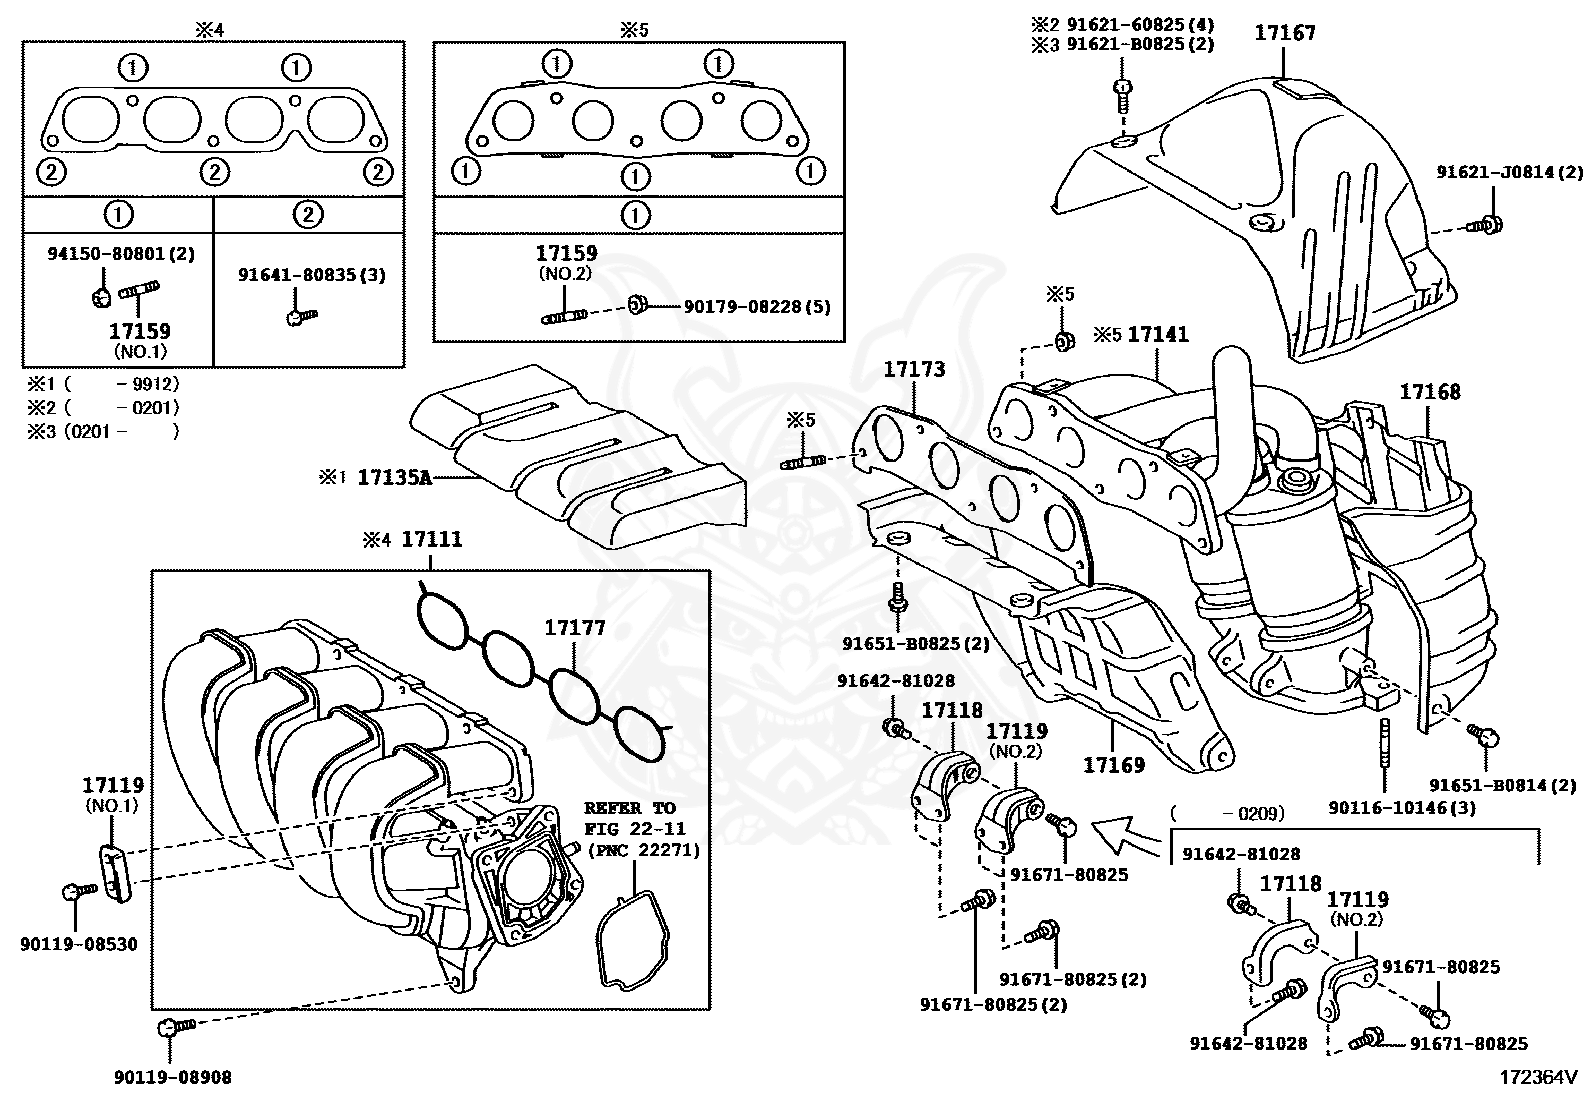 Genuine Manifold Oem Parts For The Toyota